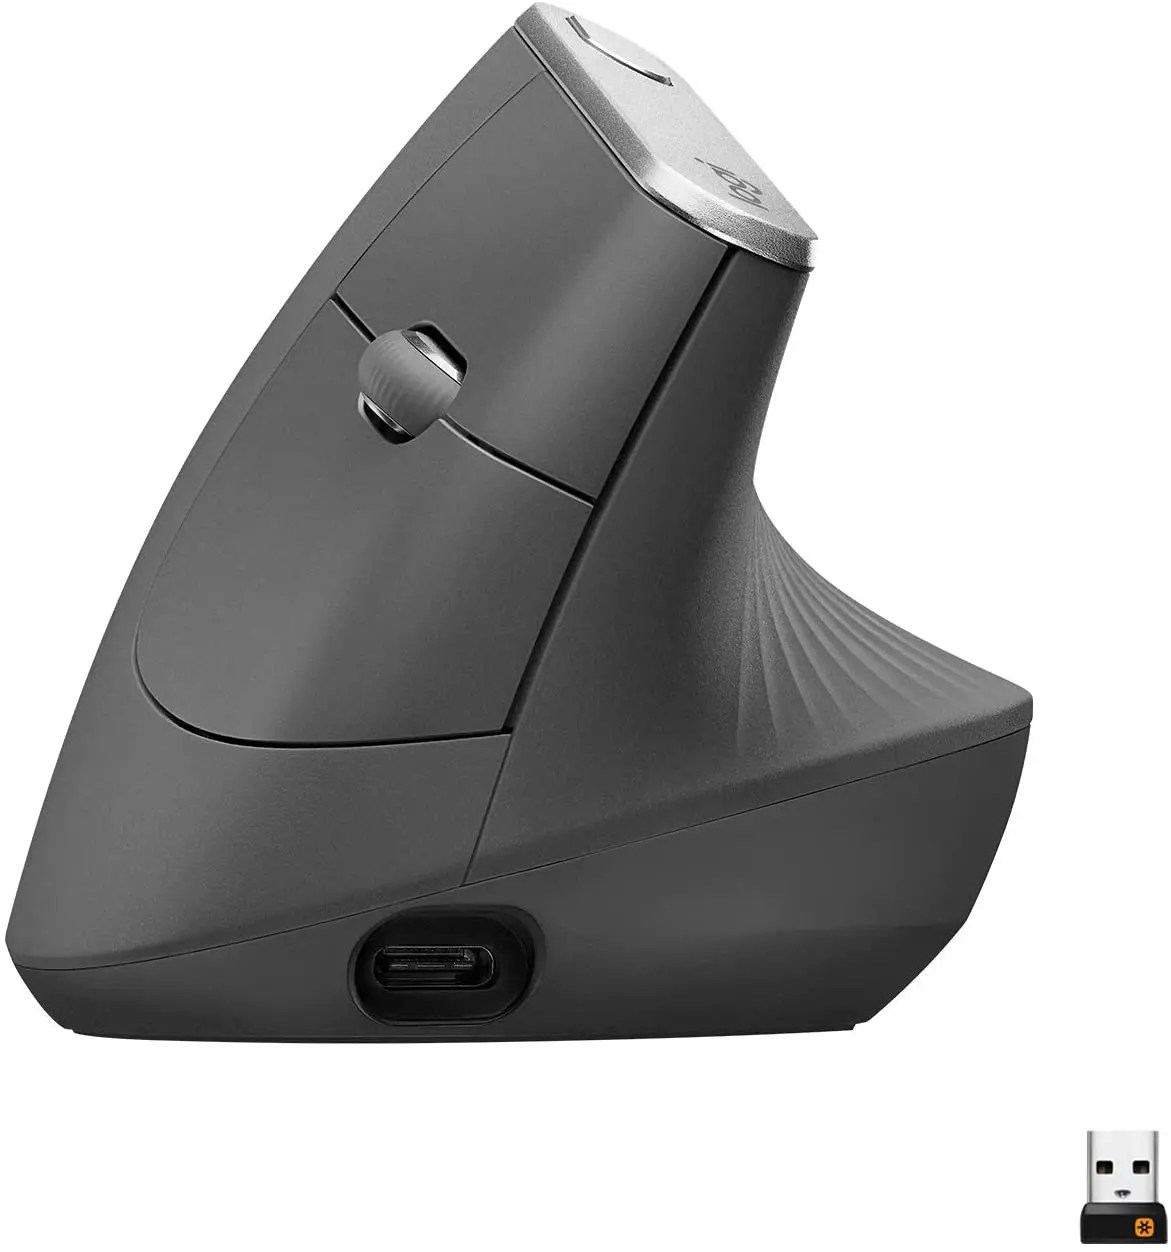 logitech mx vertical wireless mouse image